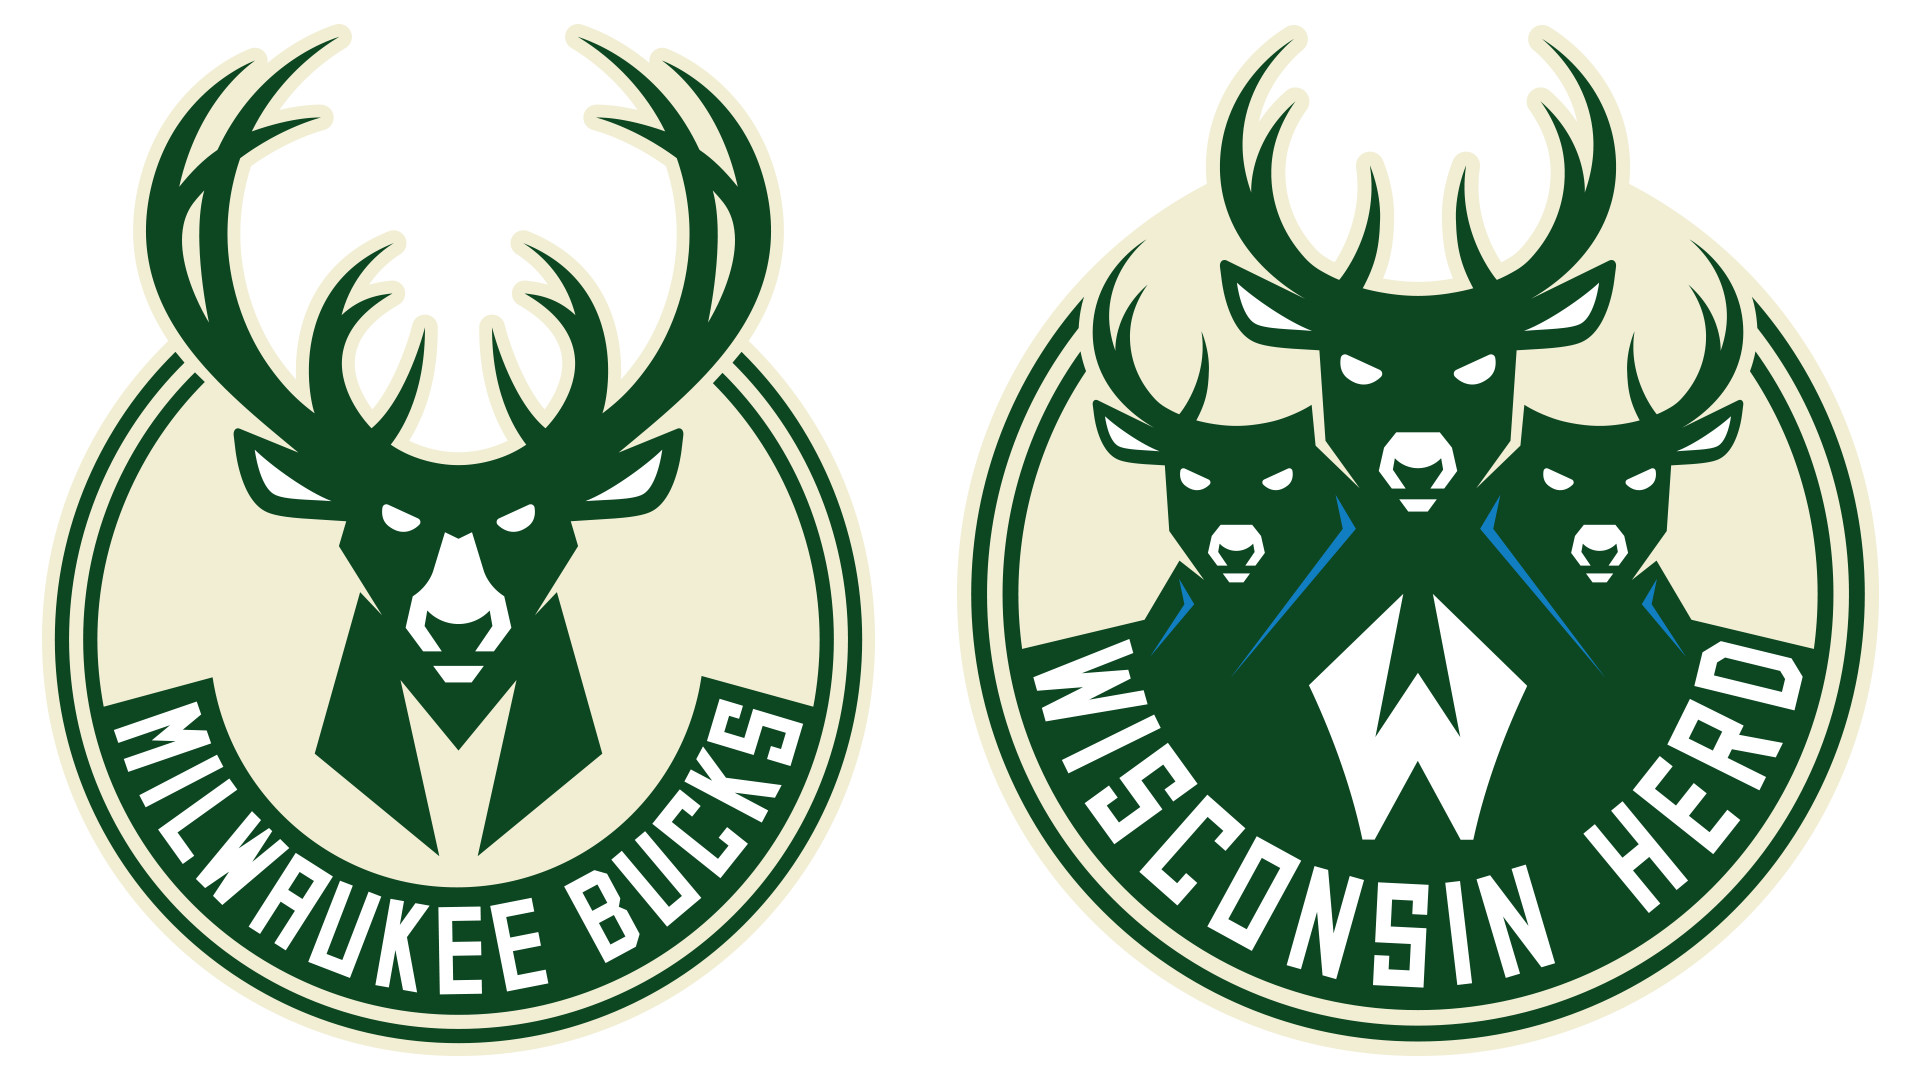 1920x1080 The Wisconsin Herd identity utilizes the visual language of the Milwaukee  Bucks' recently updated brand, illustrating their connection to their  parent club ...